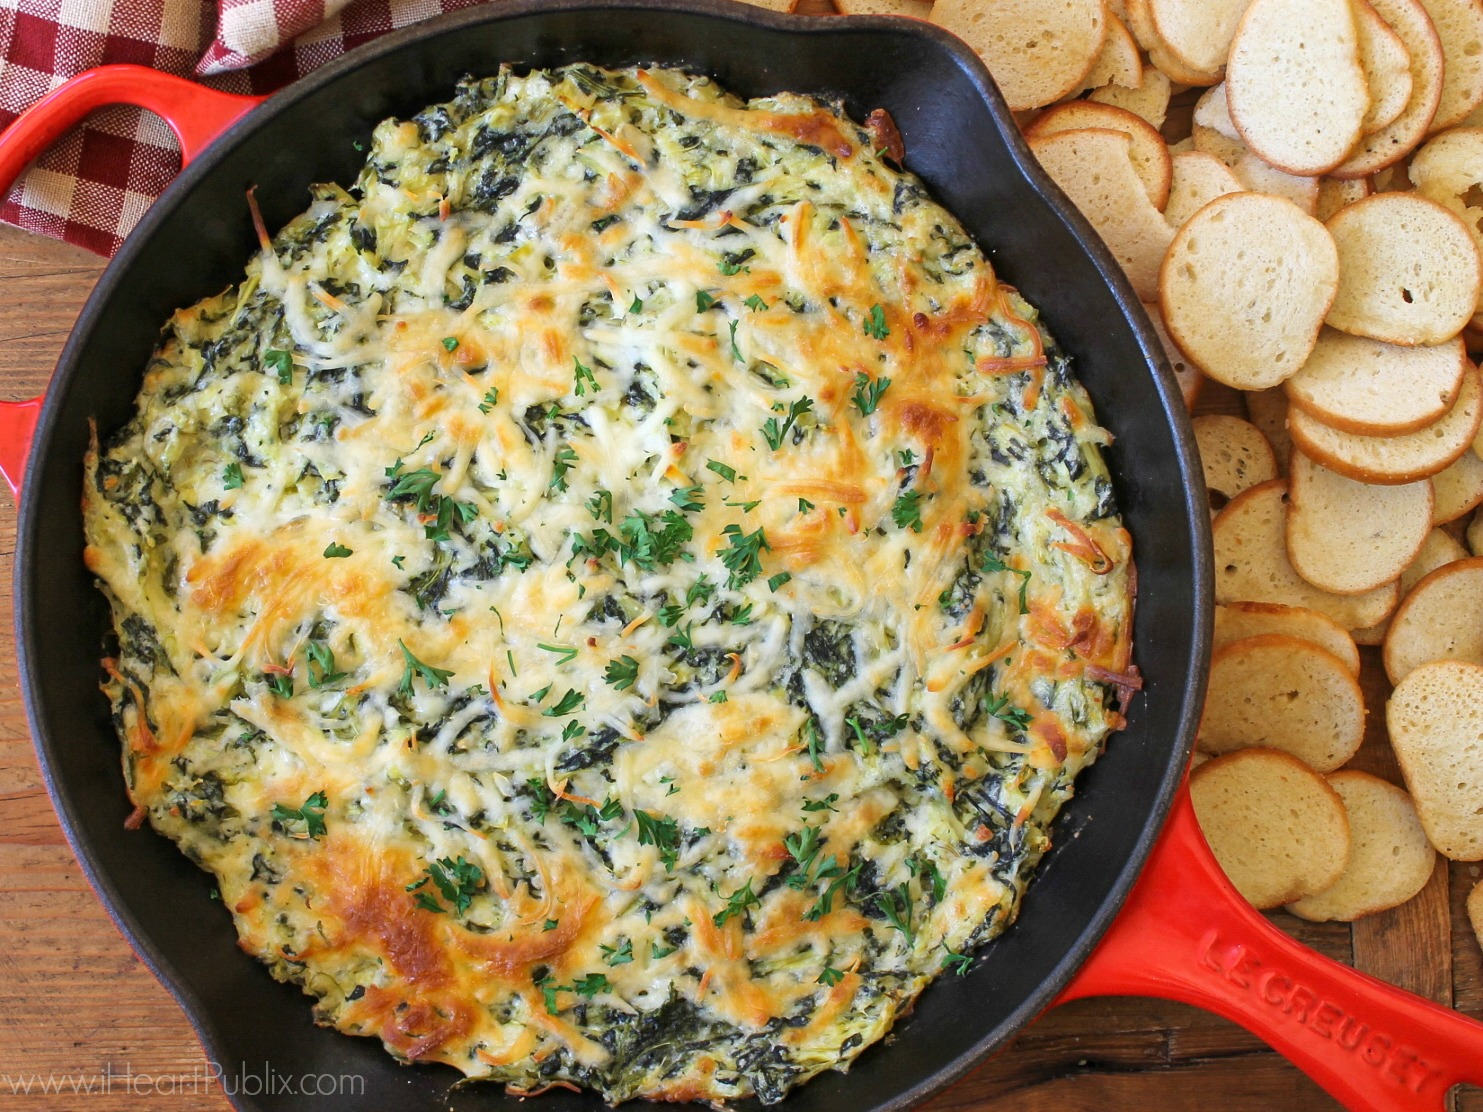 Easy Spinach Artichoke Dip on I Heart Publix